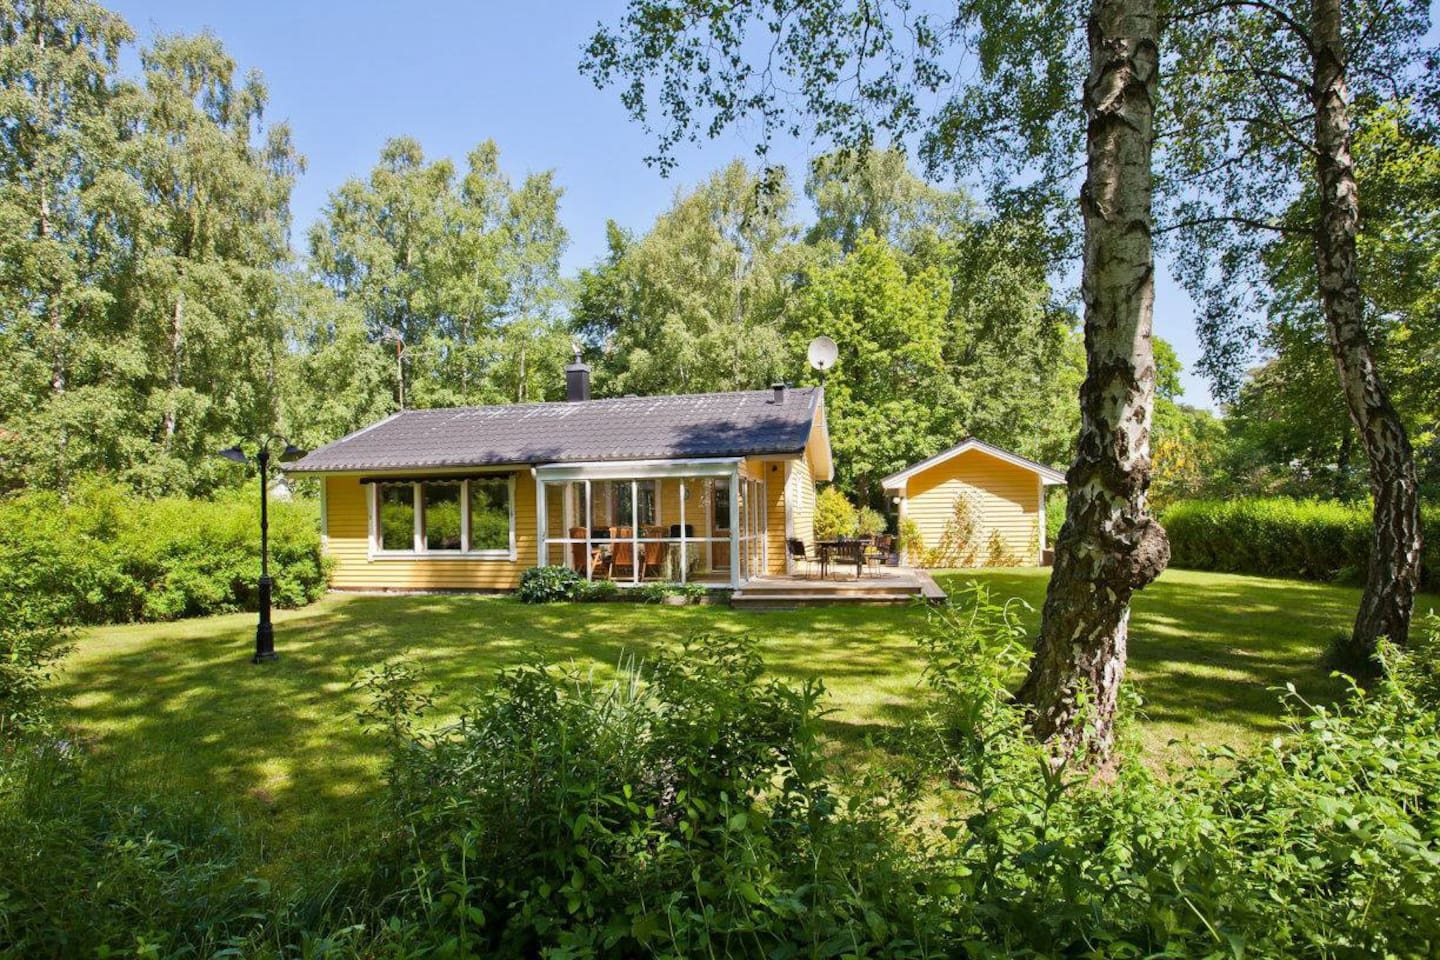 Top 20 Ystad Vacation Cabin Rentals and Cottage Rentals - Airbnb Ystad